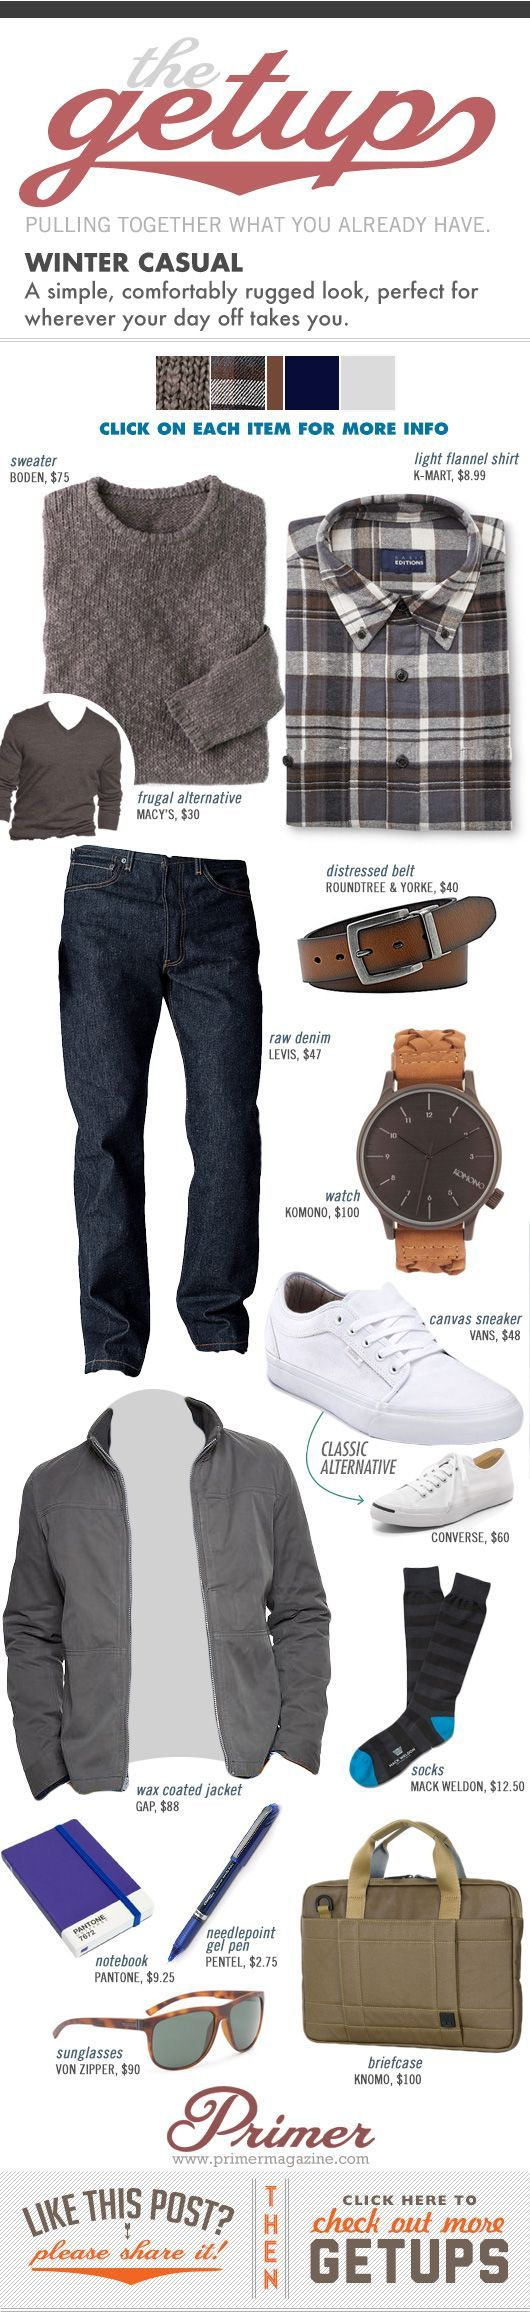 The Getup: Winter Casual - Primer #winter #casual #stylish